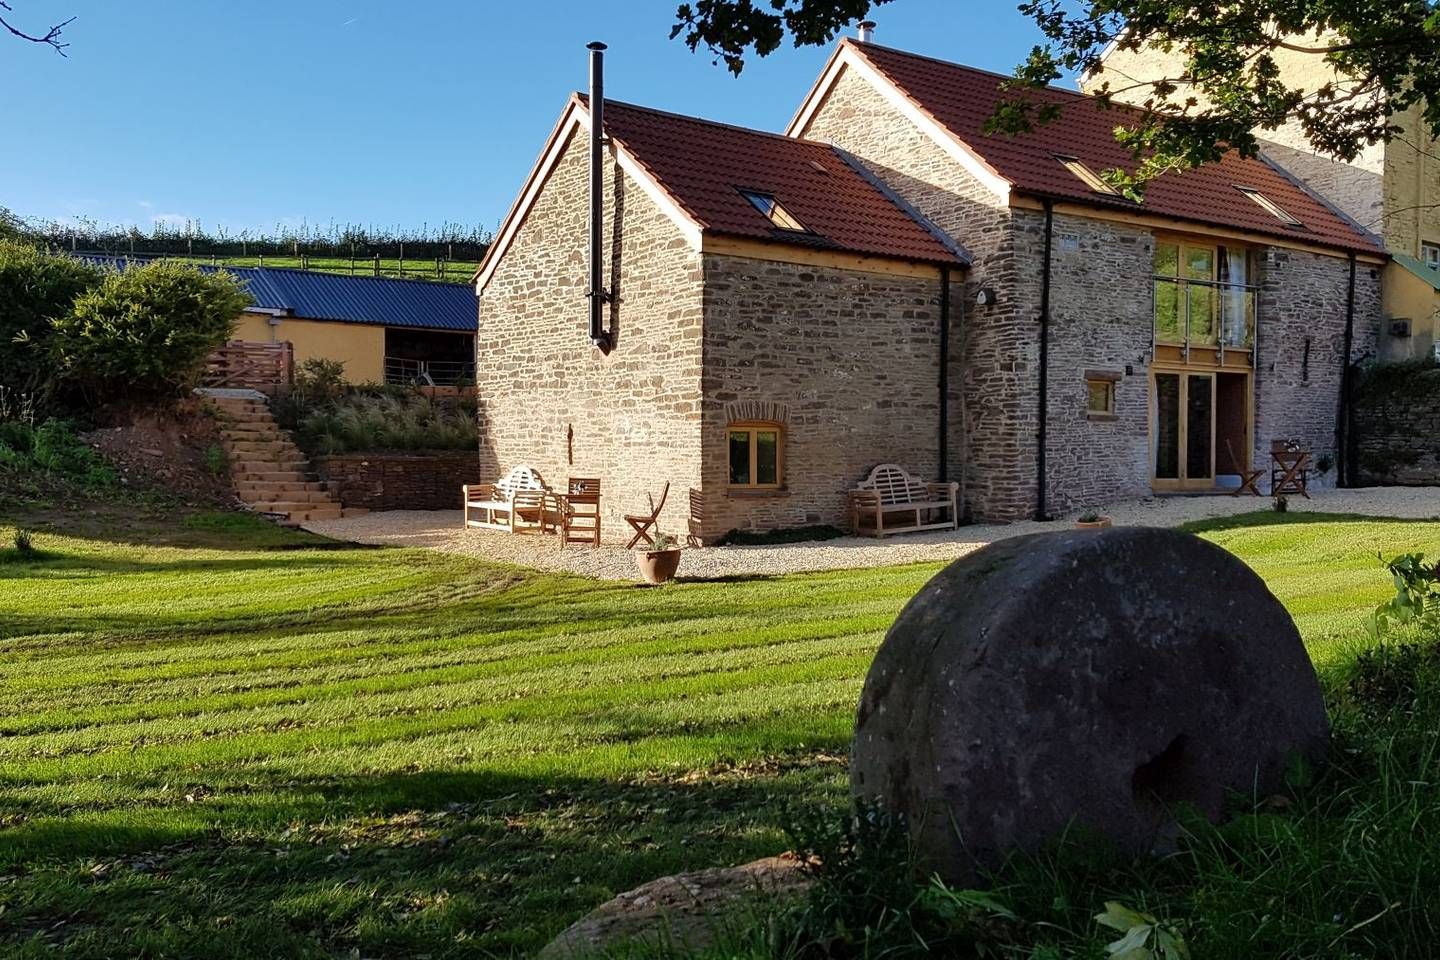 Holiday cottage New Court Cottages luxury self catering accommodation Usk, Monmouthshire, South Wales